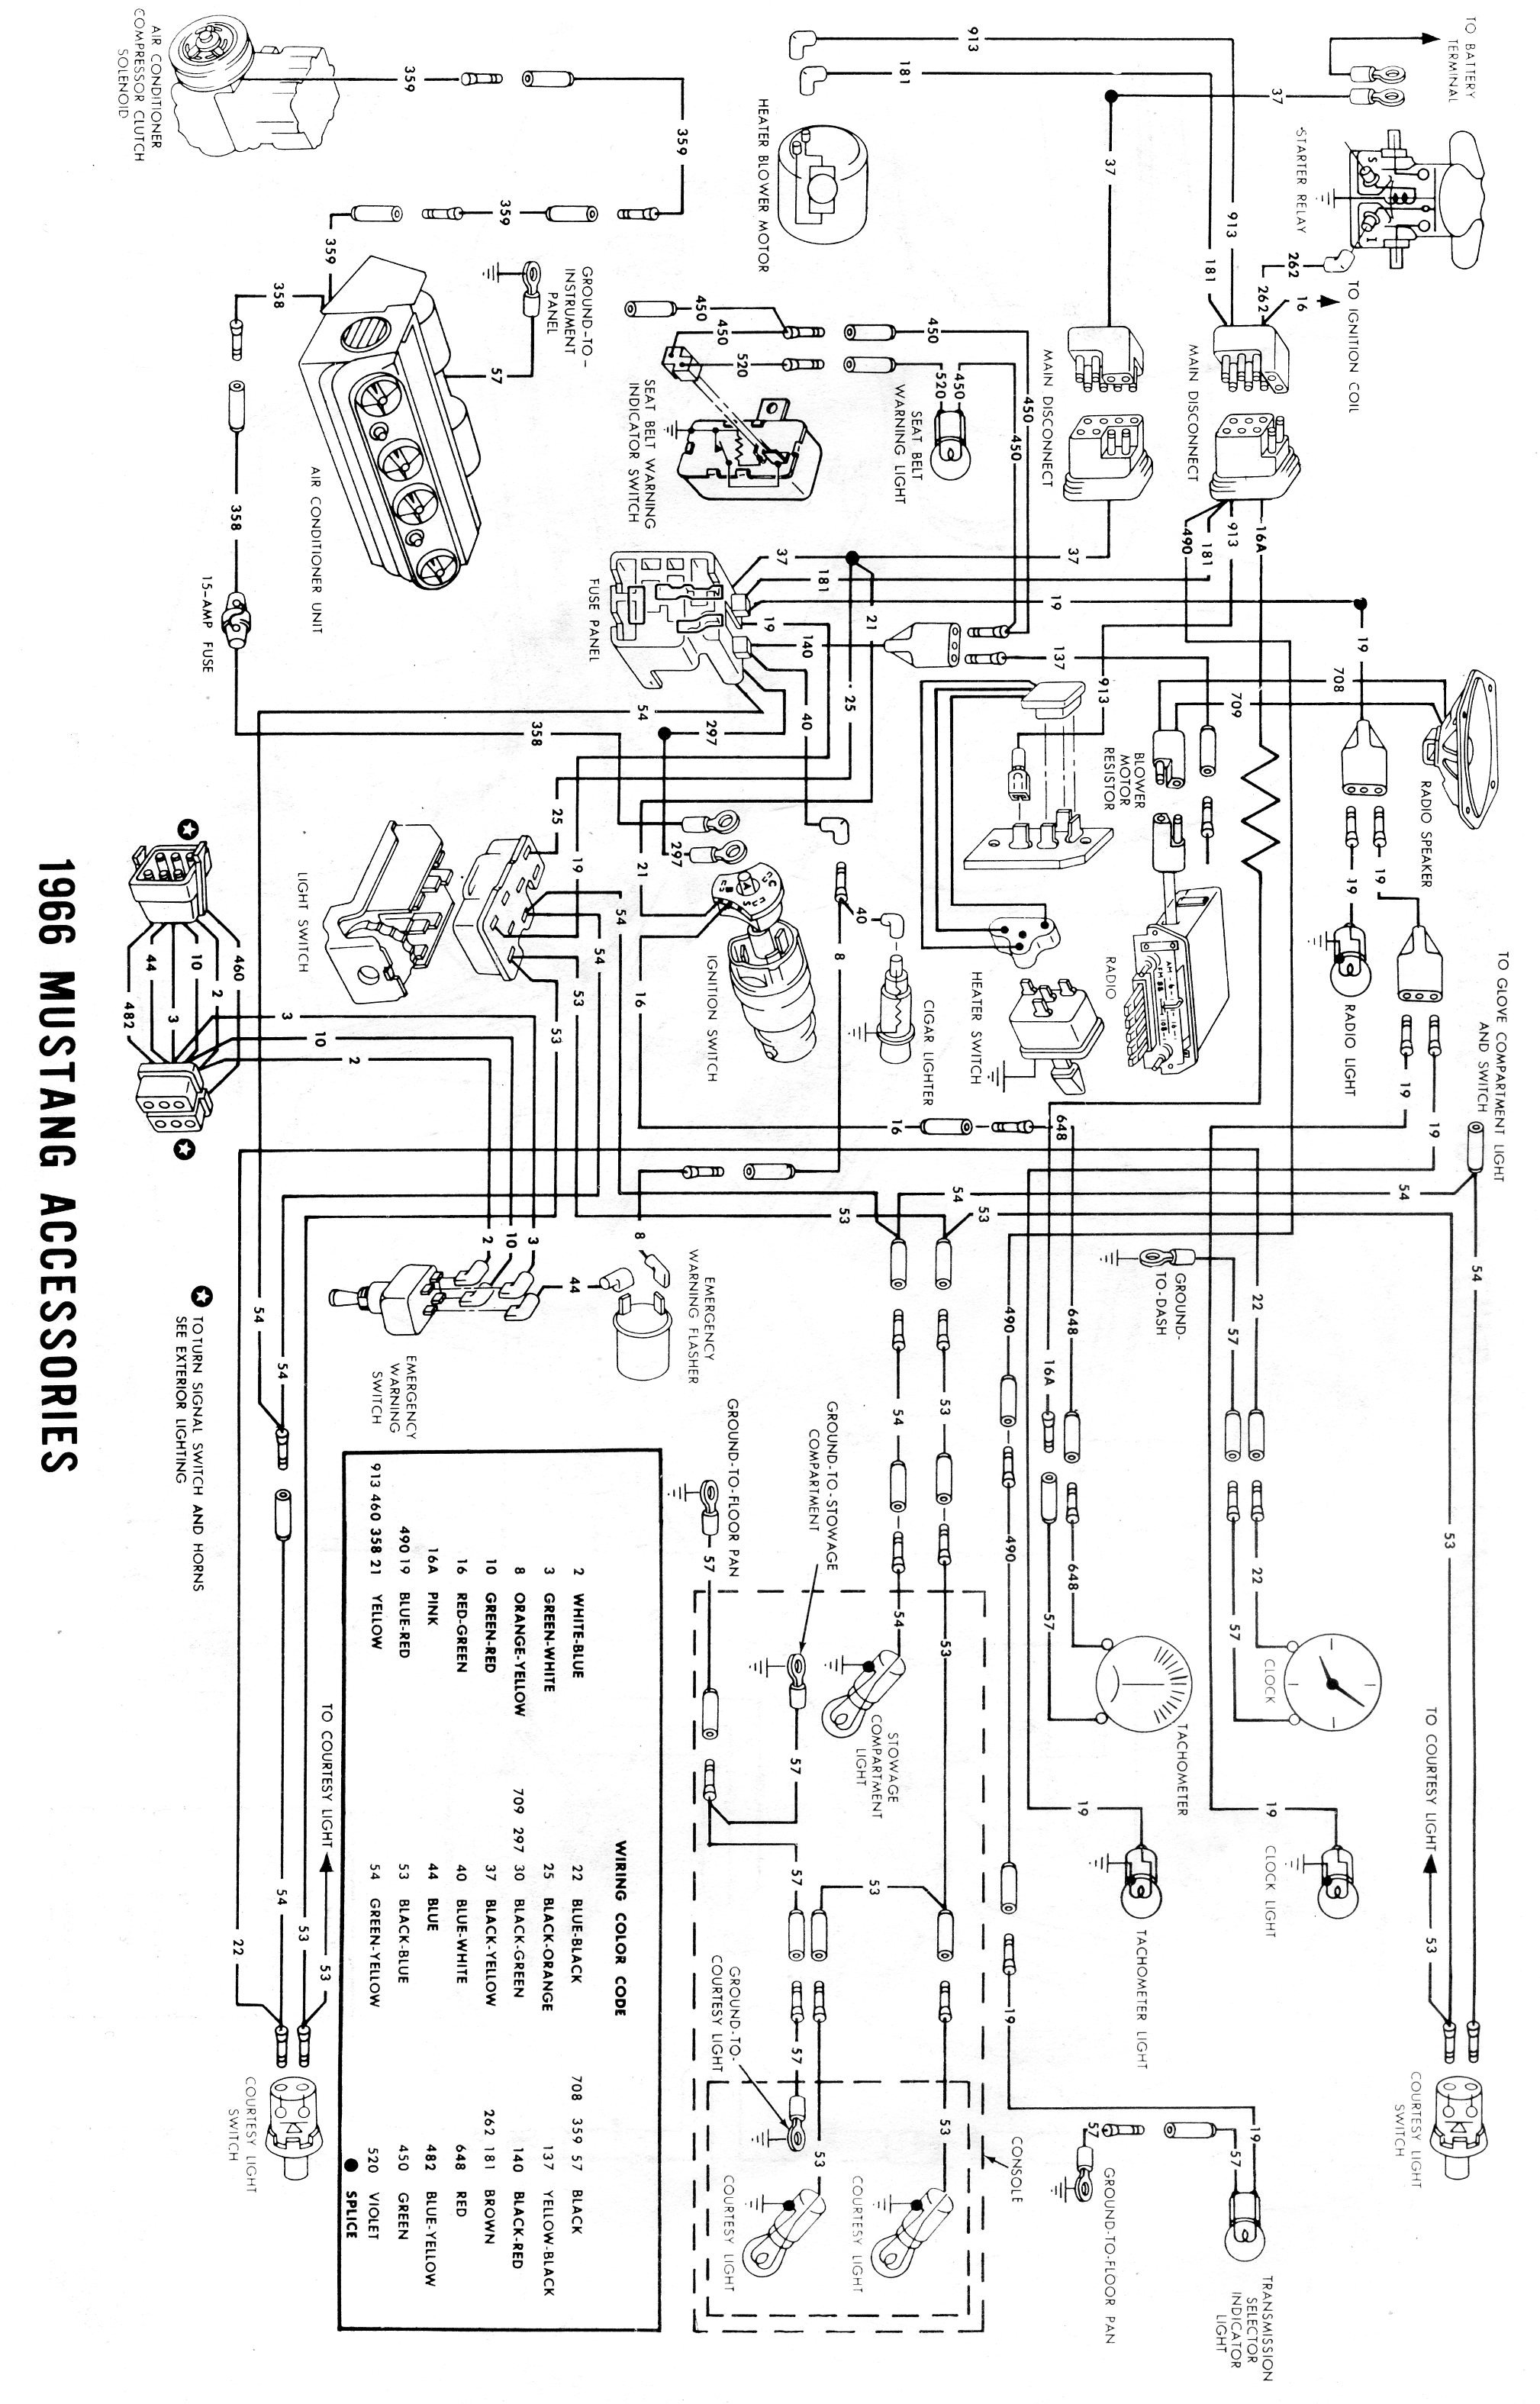 Ford Obd1 Connector Location